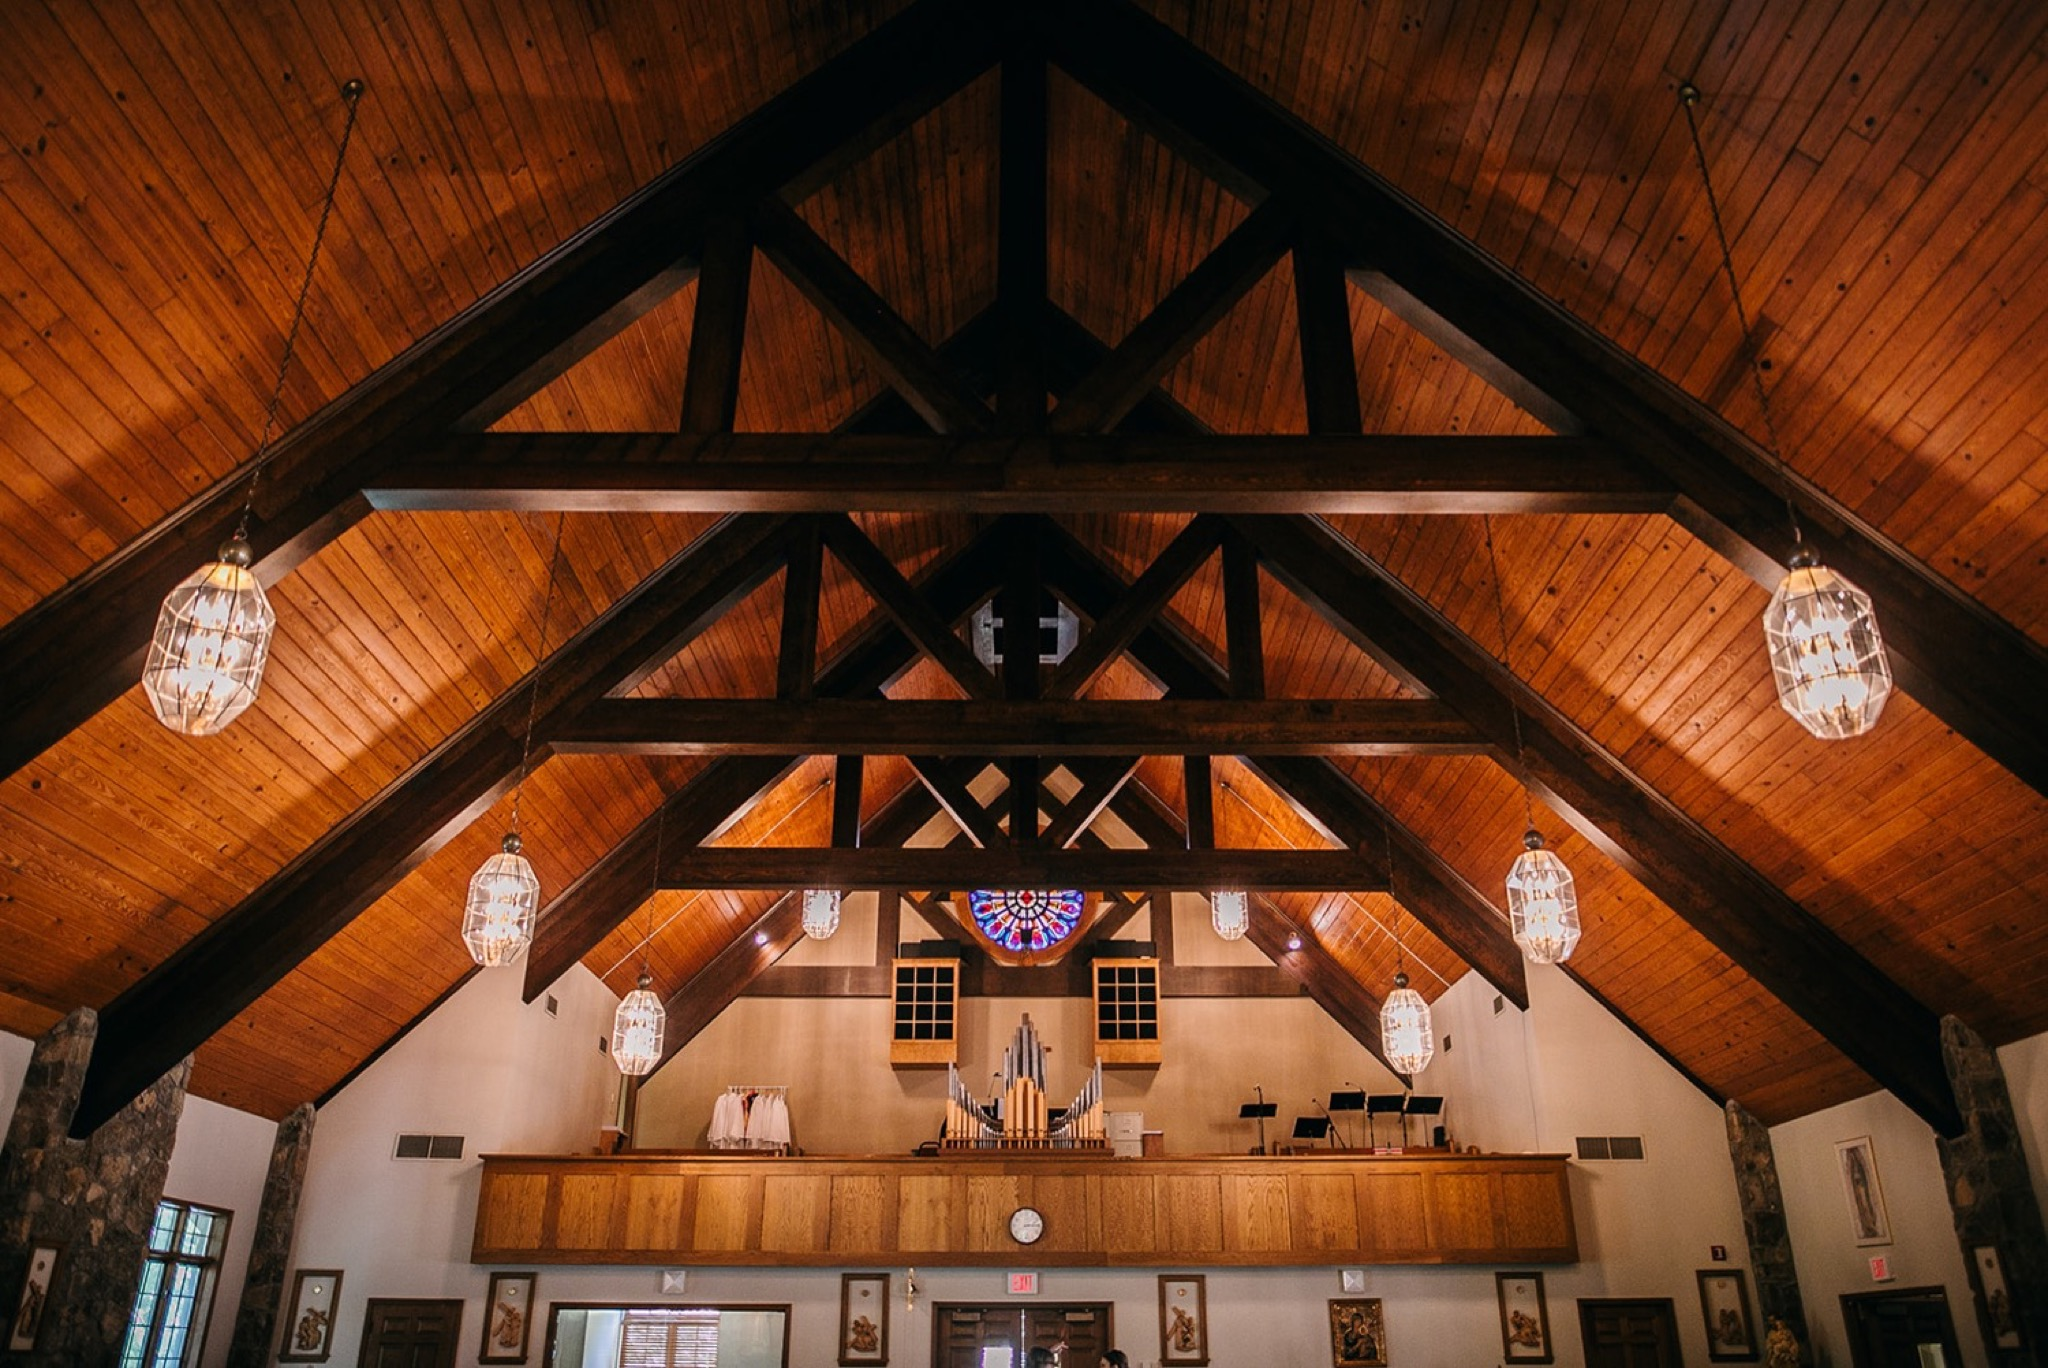 peaked wooden ceiling and large wooden rafters inside Our Lady of the Mount Catholic Church on Lookout Mountain